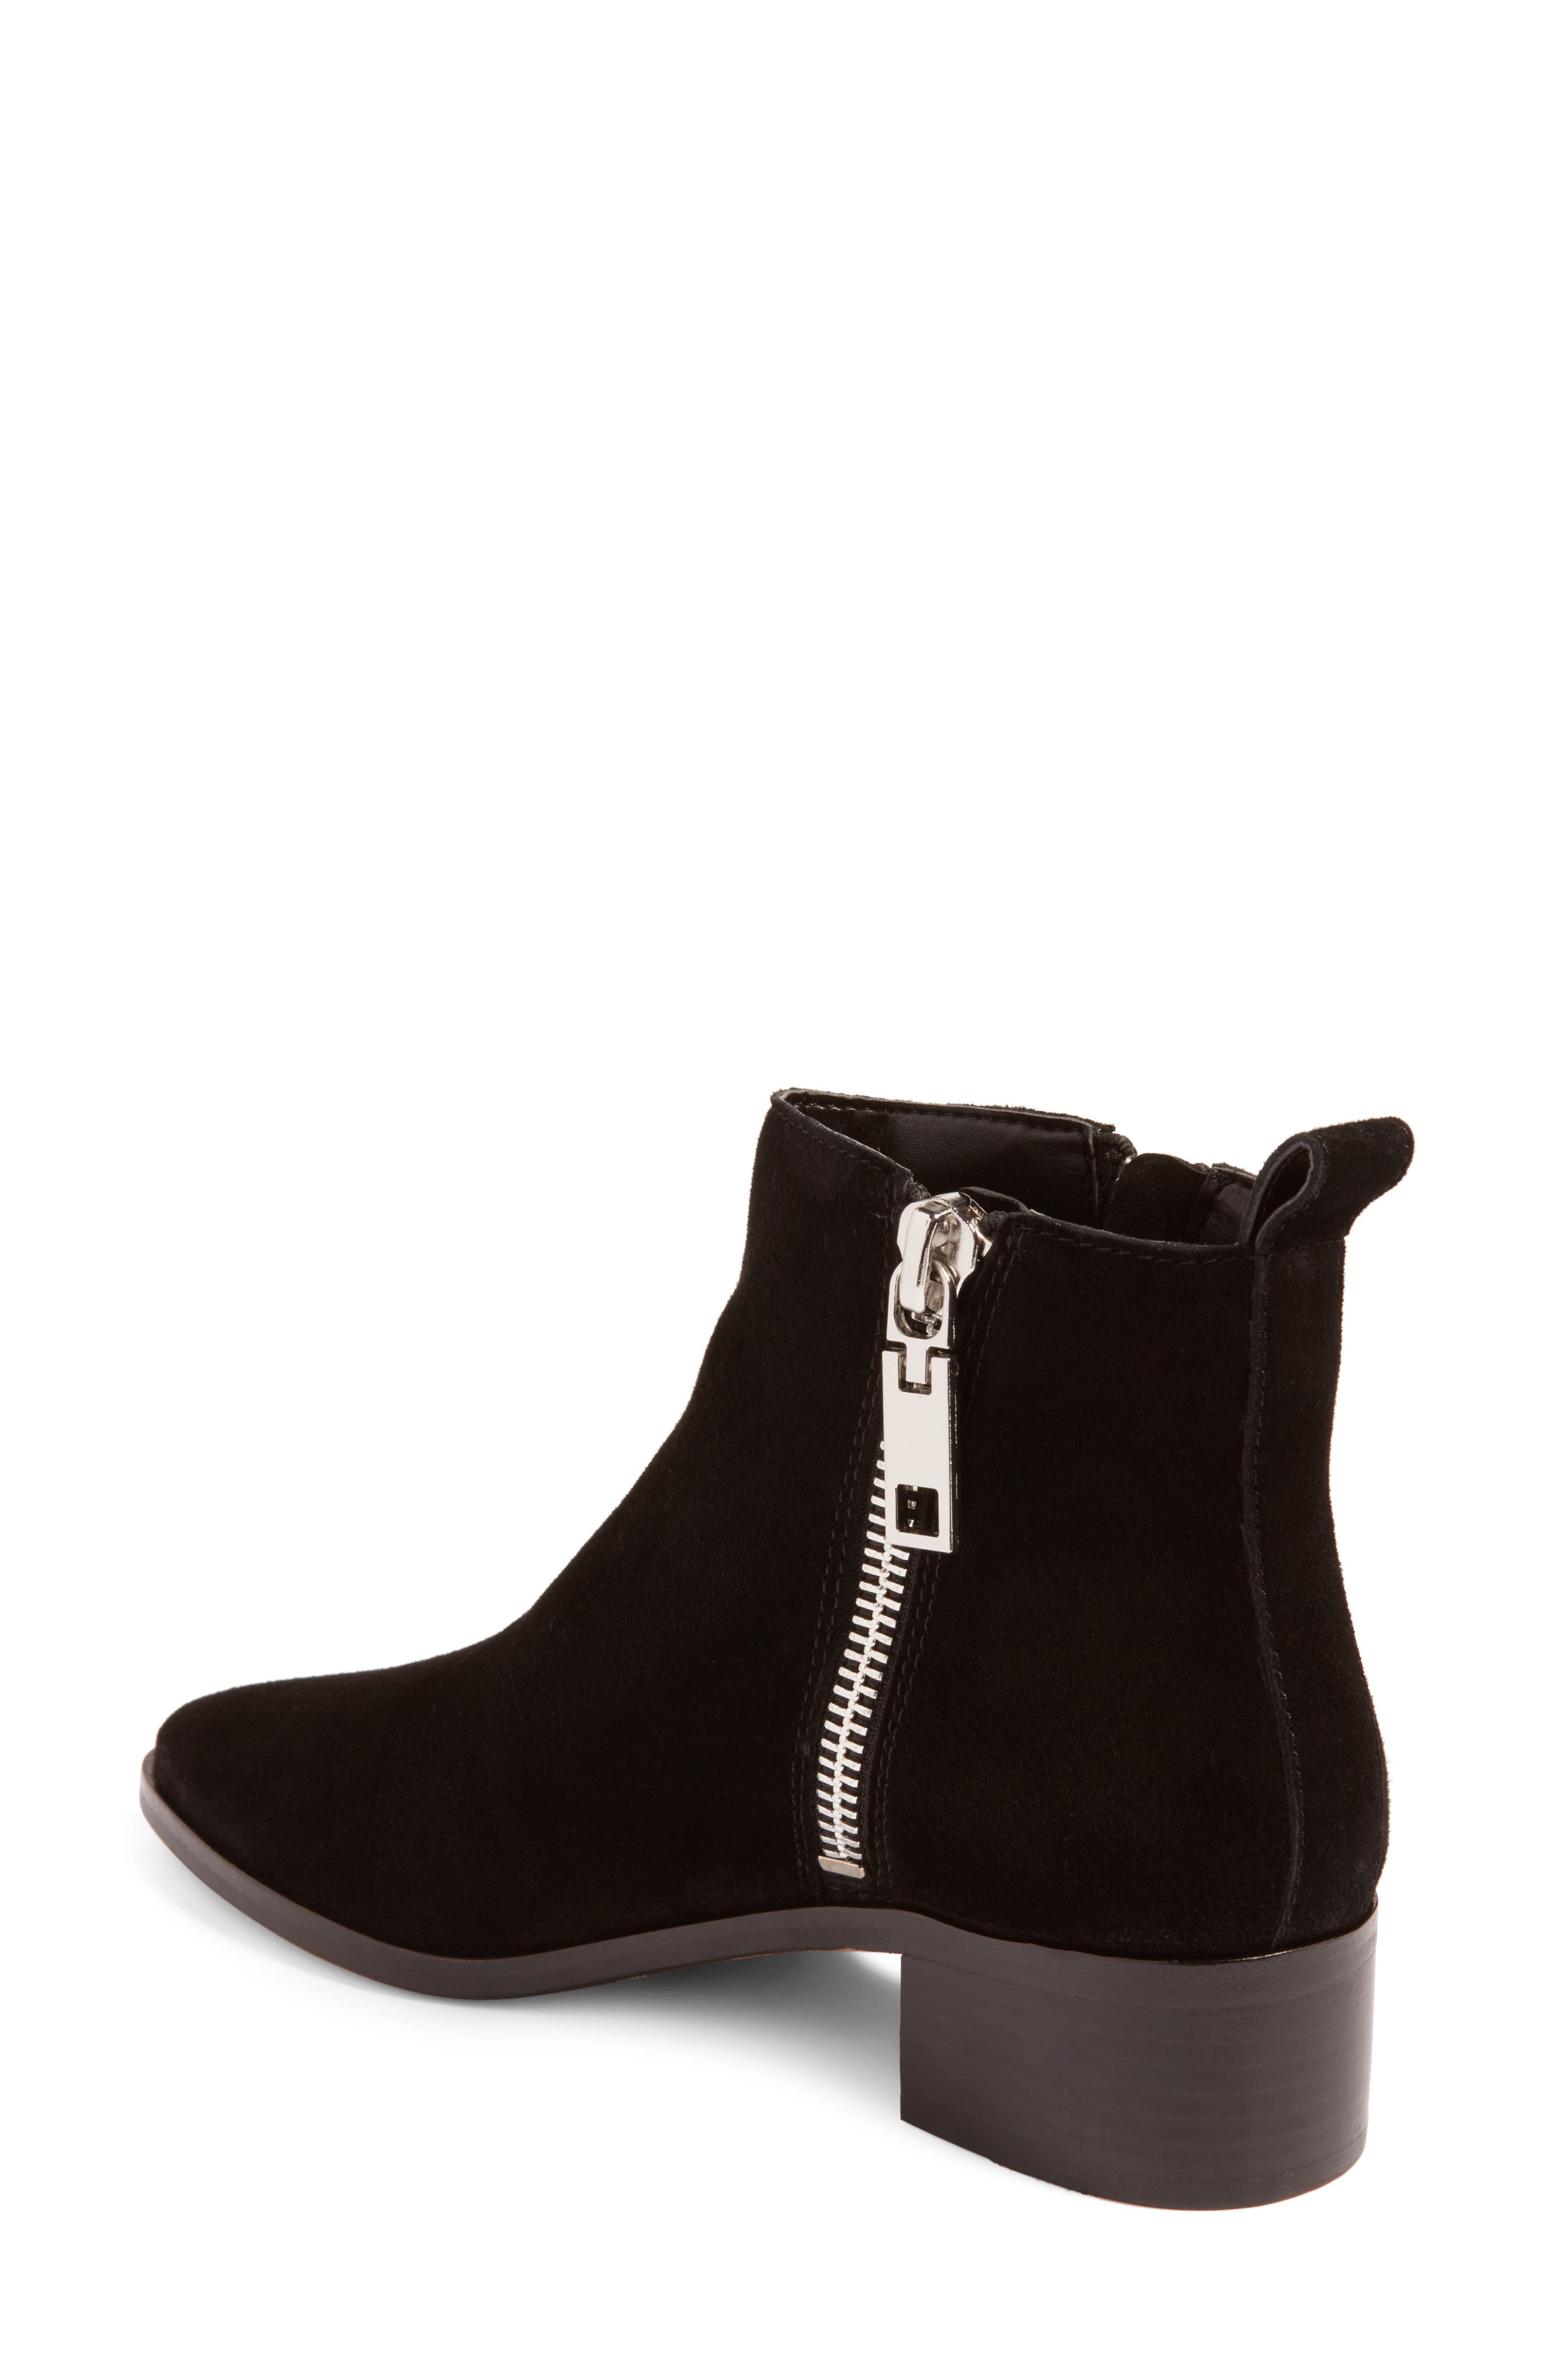 Marra Double Zip Bootie,                             Alternate thumbnail 2, color,                             001